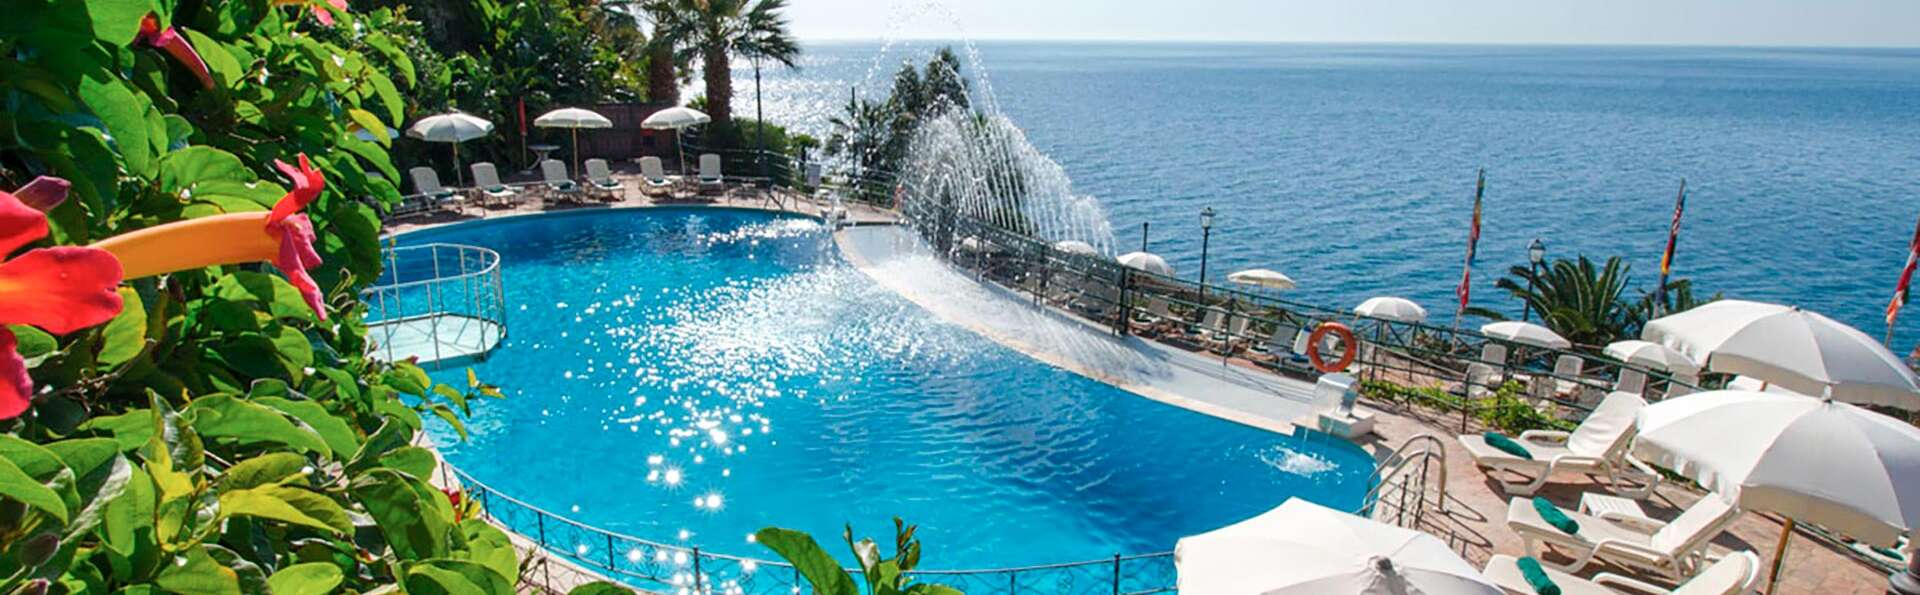 Baia Taormina Grand Palace Hotels & Spa - EDIT_POOL_01.jpg